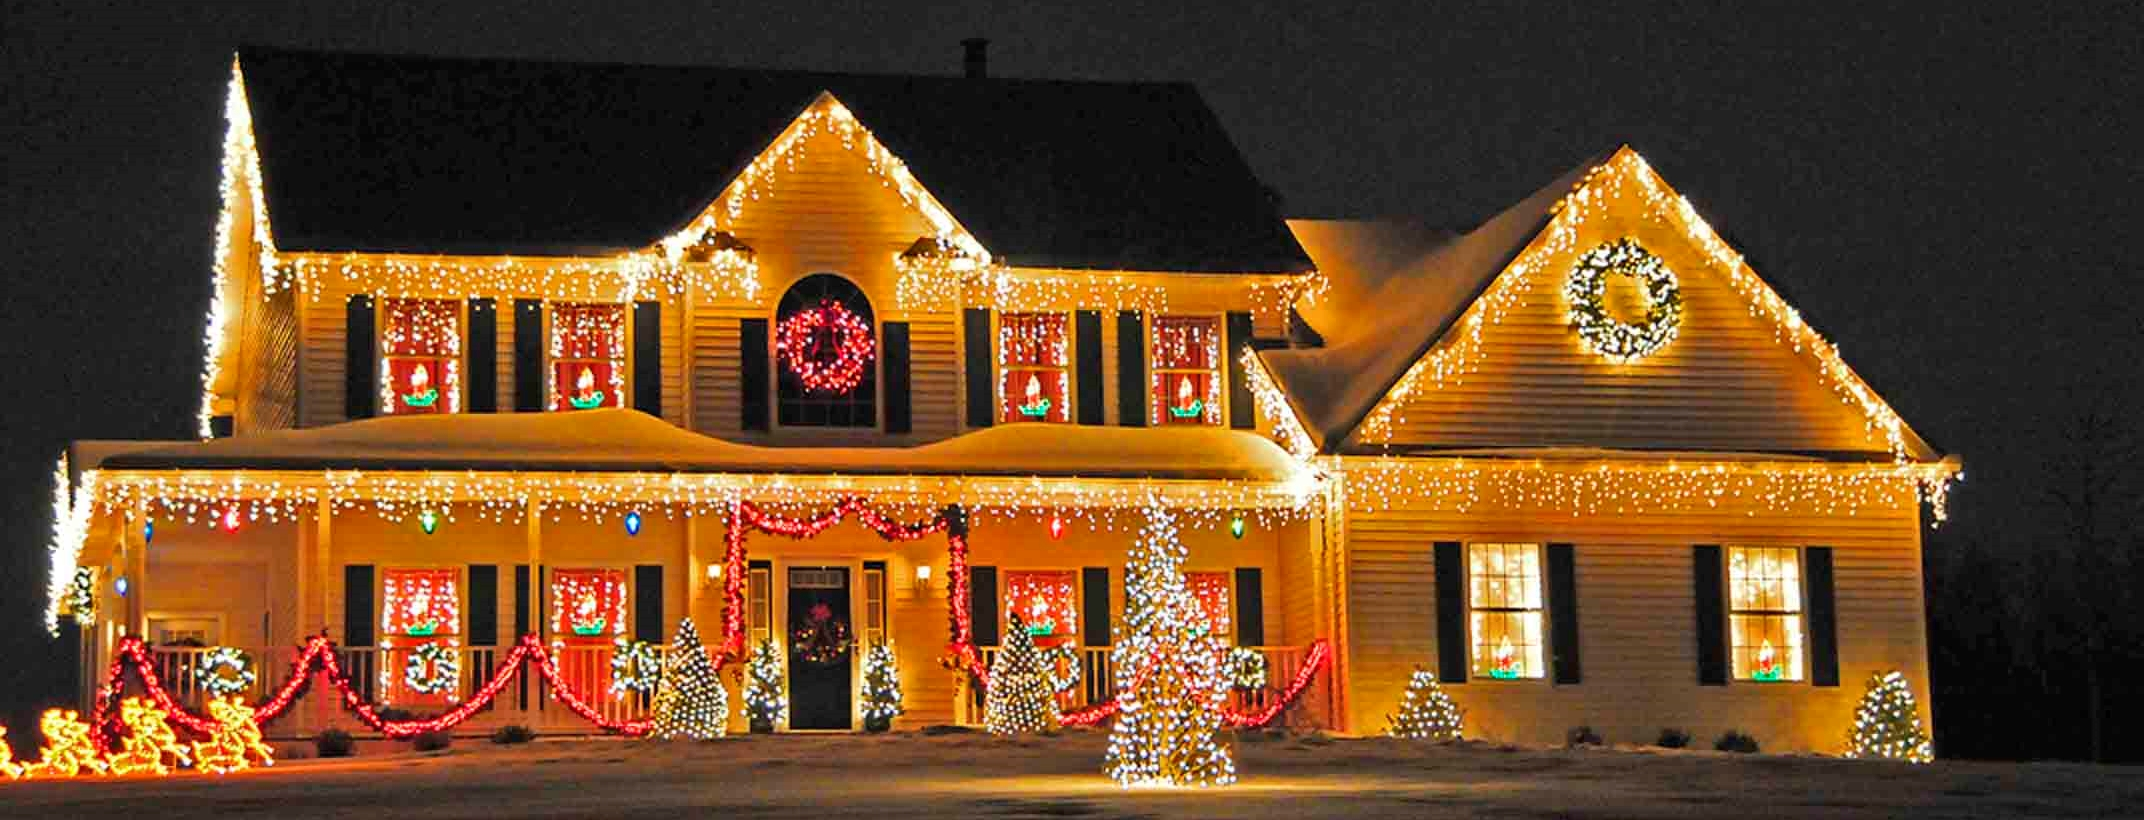 Download Christmas Lights On House